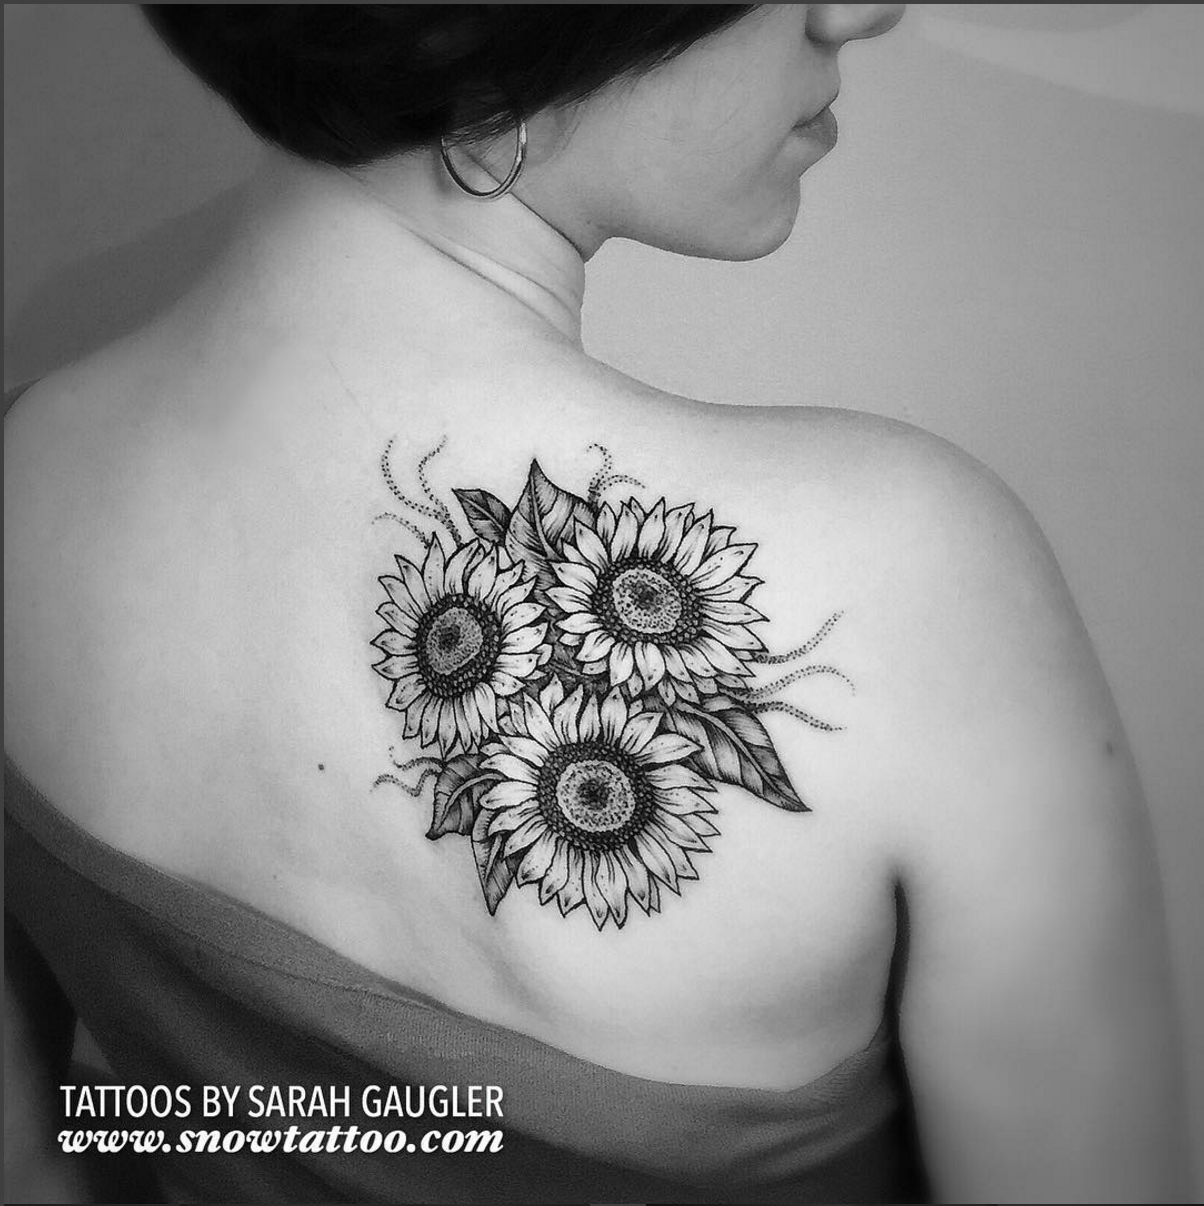 Cusotm+Sarahgaugler+Sunflower+Sunflowers+Sunflowerstattoo+Tattoo+Line+Art+Original+Flash+Tattoo+by+Sarah+Gaugler+at+Snow+Tattoo+New+York+NYC.jpg